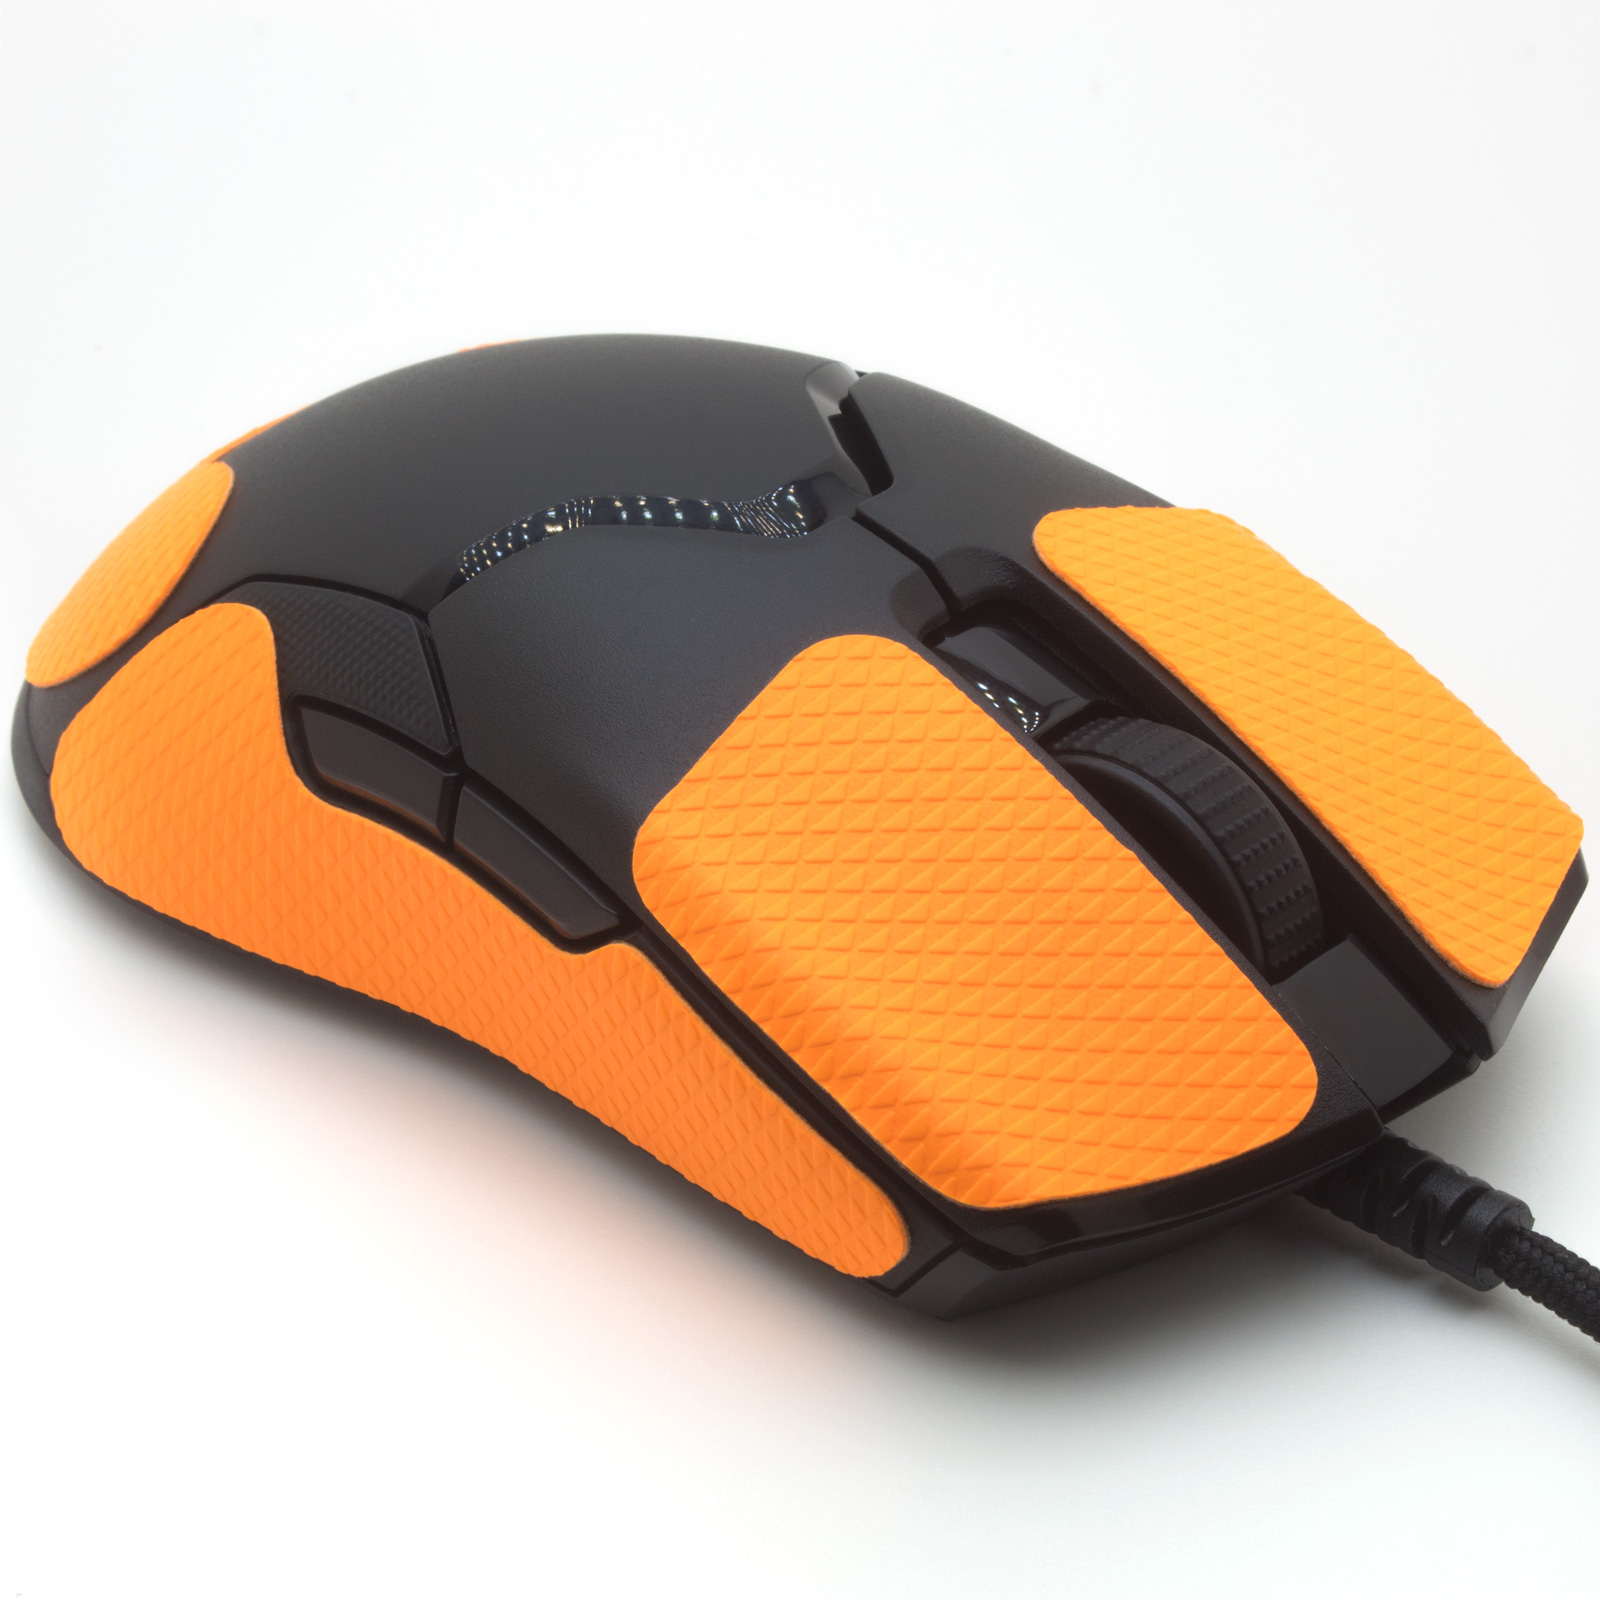 Mouse grip tape for Razer VIPER from the brand TrueGrip - front right view